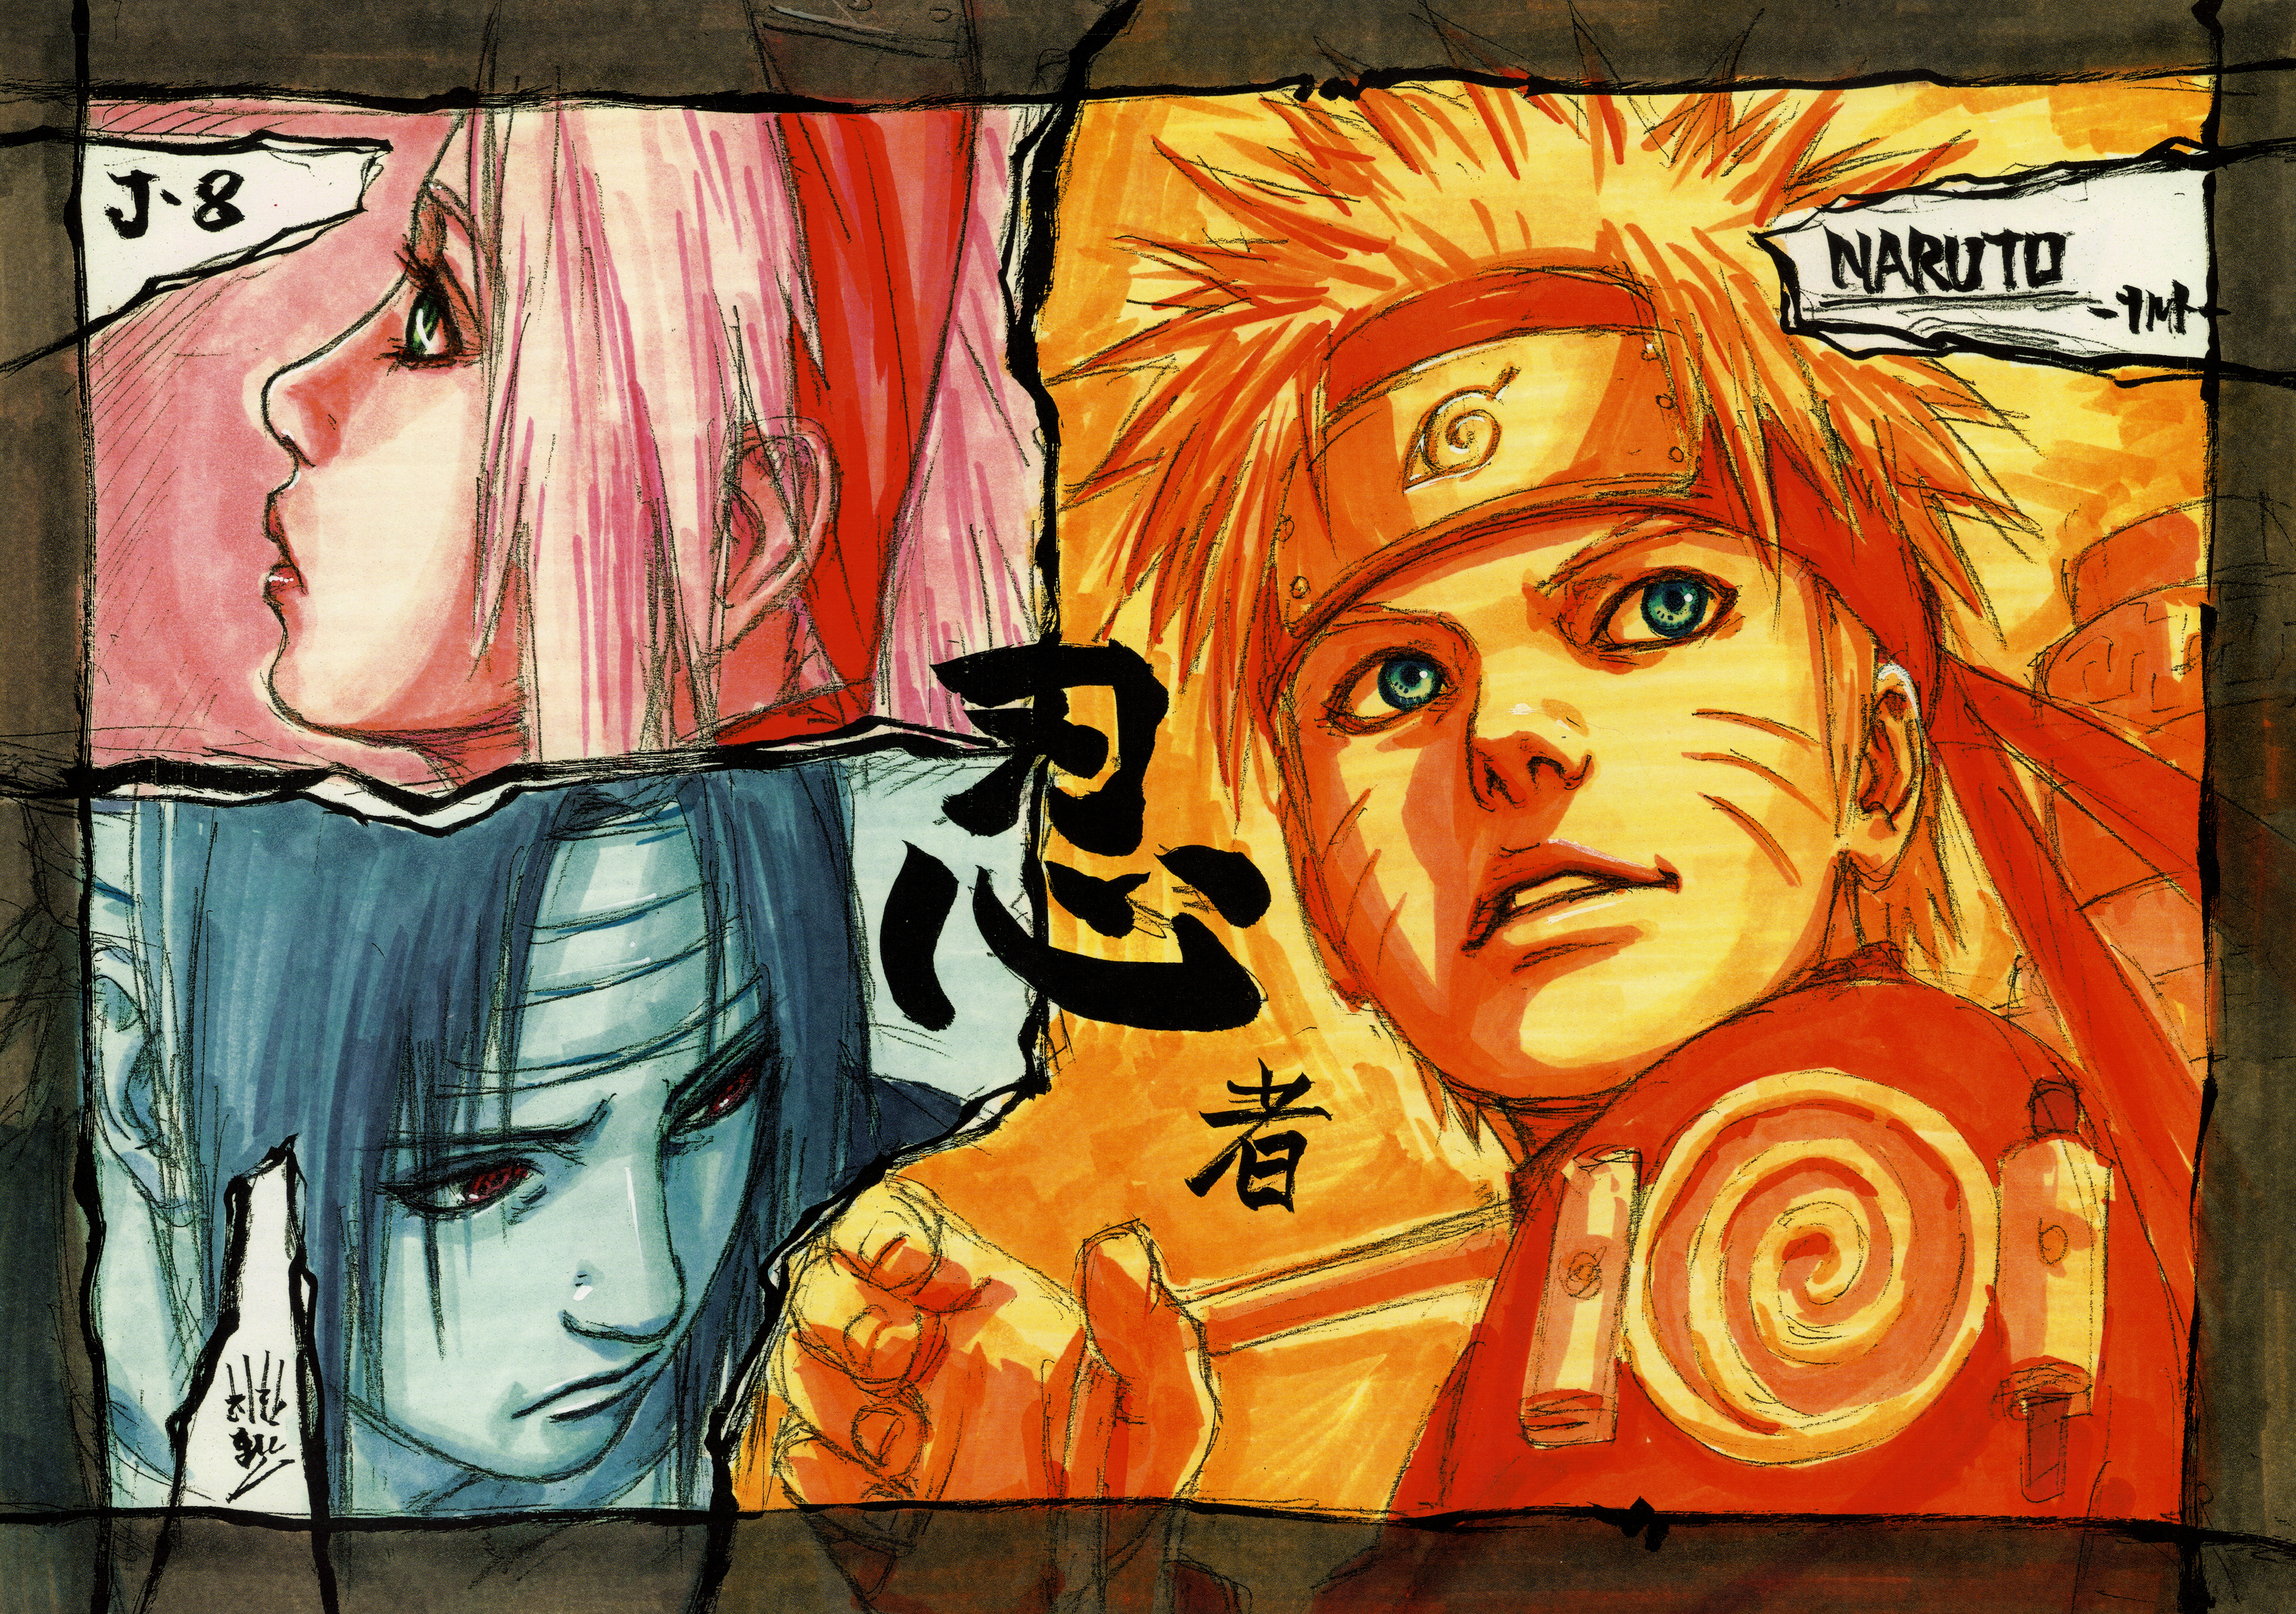 Naruto, Sakura, Sasuke in Orange, Pink, Blue